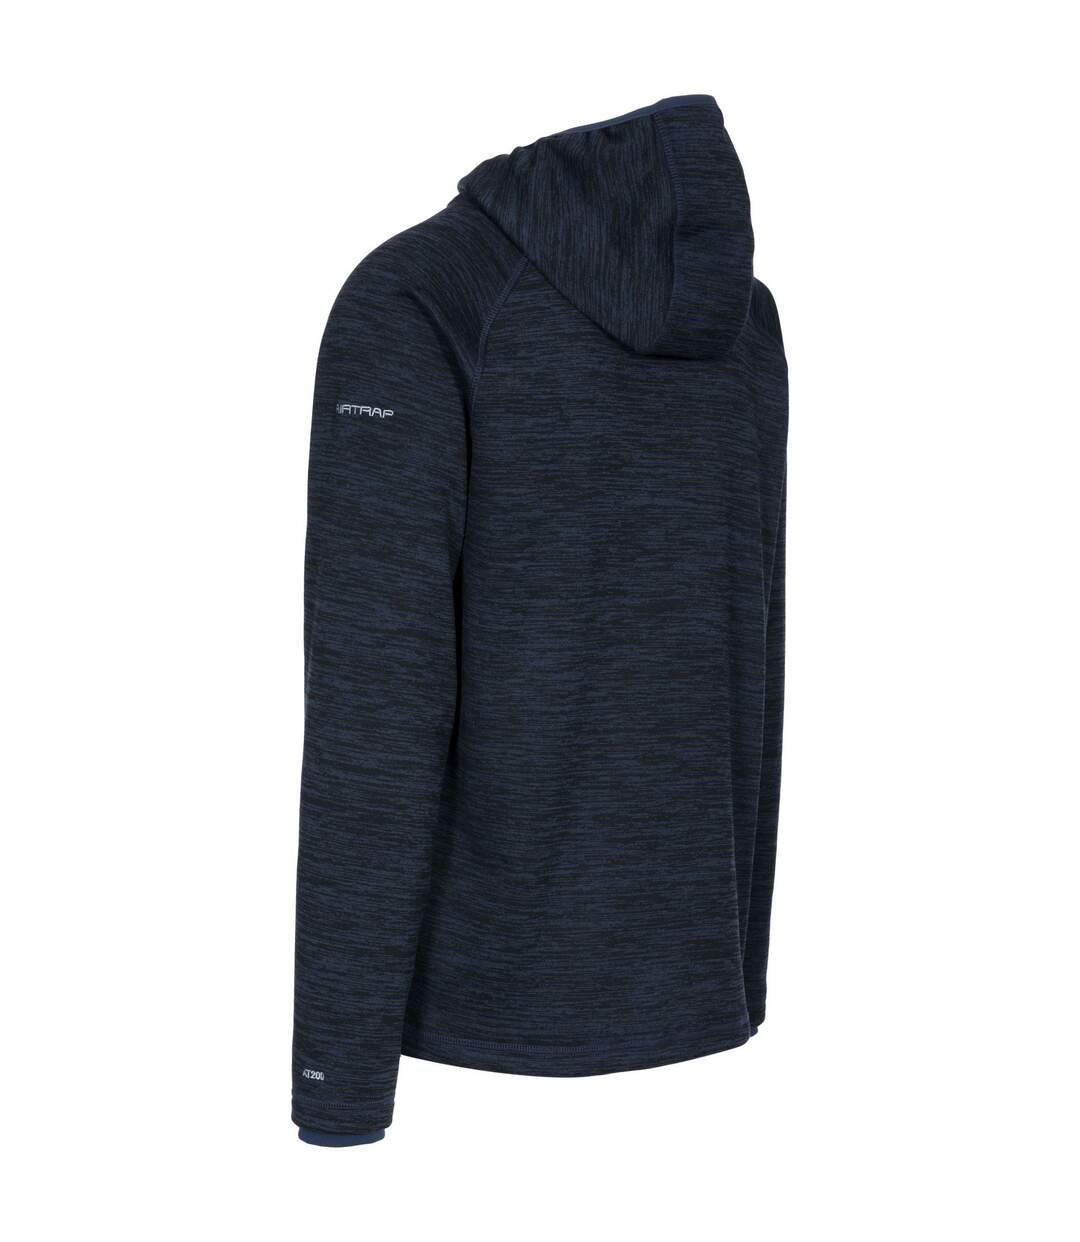 Trespass Mens Northwood Full Zip Fleece Hoodie (Navy Marl) - UTTP3219